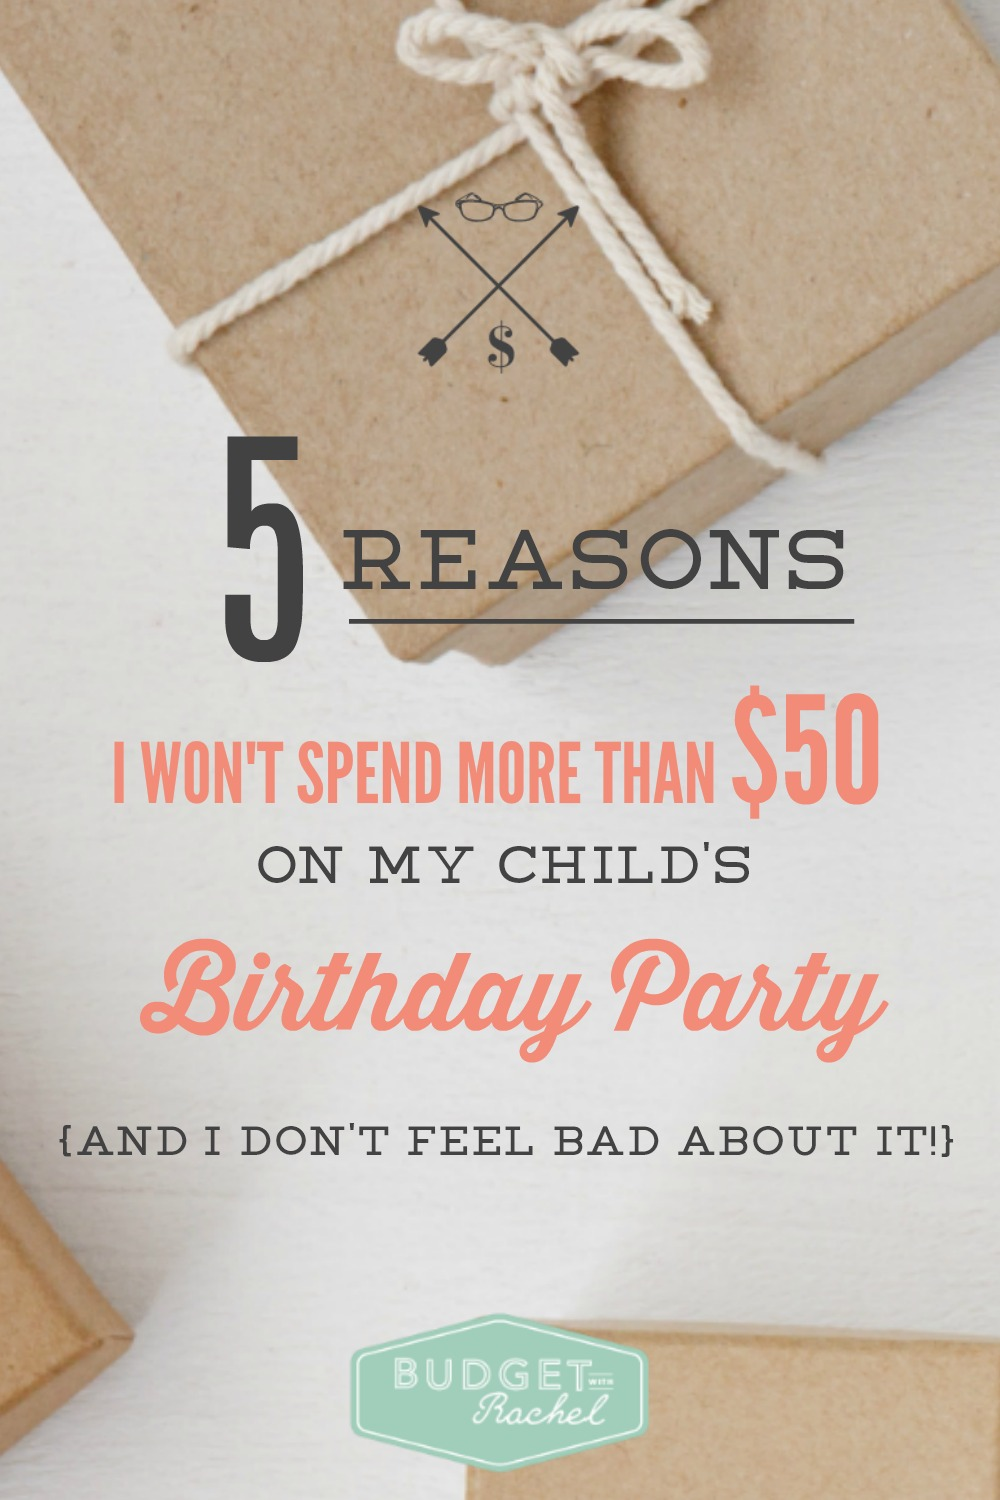 Why I Won't Spend More Than $50 On My Child's Birthday Party (...and I Don't Feel Bad About It!) This made me feel so much better about planning my child's birthday party. #1 was kind of like a punch to the gut, but #5 is definitely my favorite. I am going to keep reading this if I feel stressed about party planning. All of these reasons are so true and I am never spending more than $50 on a birthday party ever again!